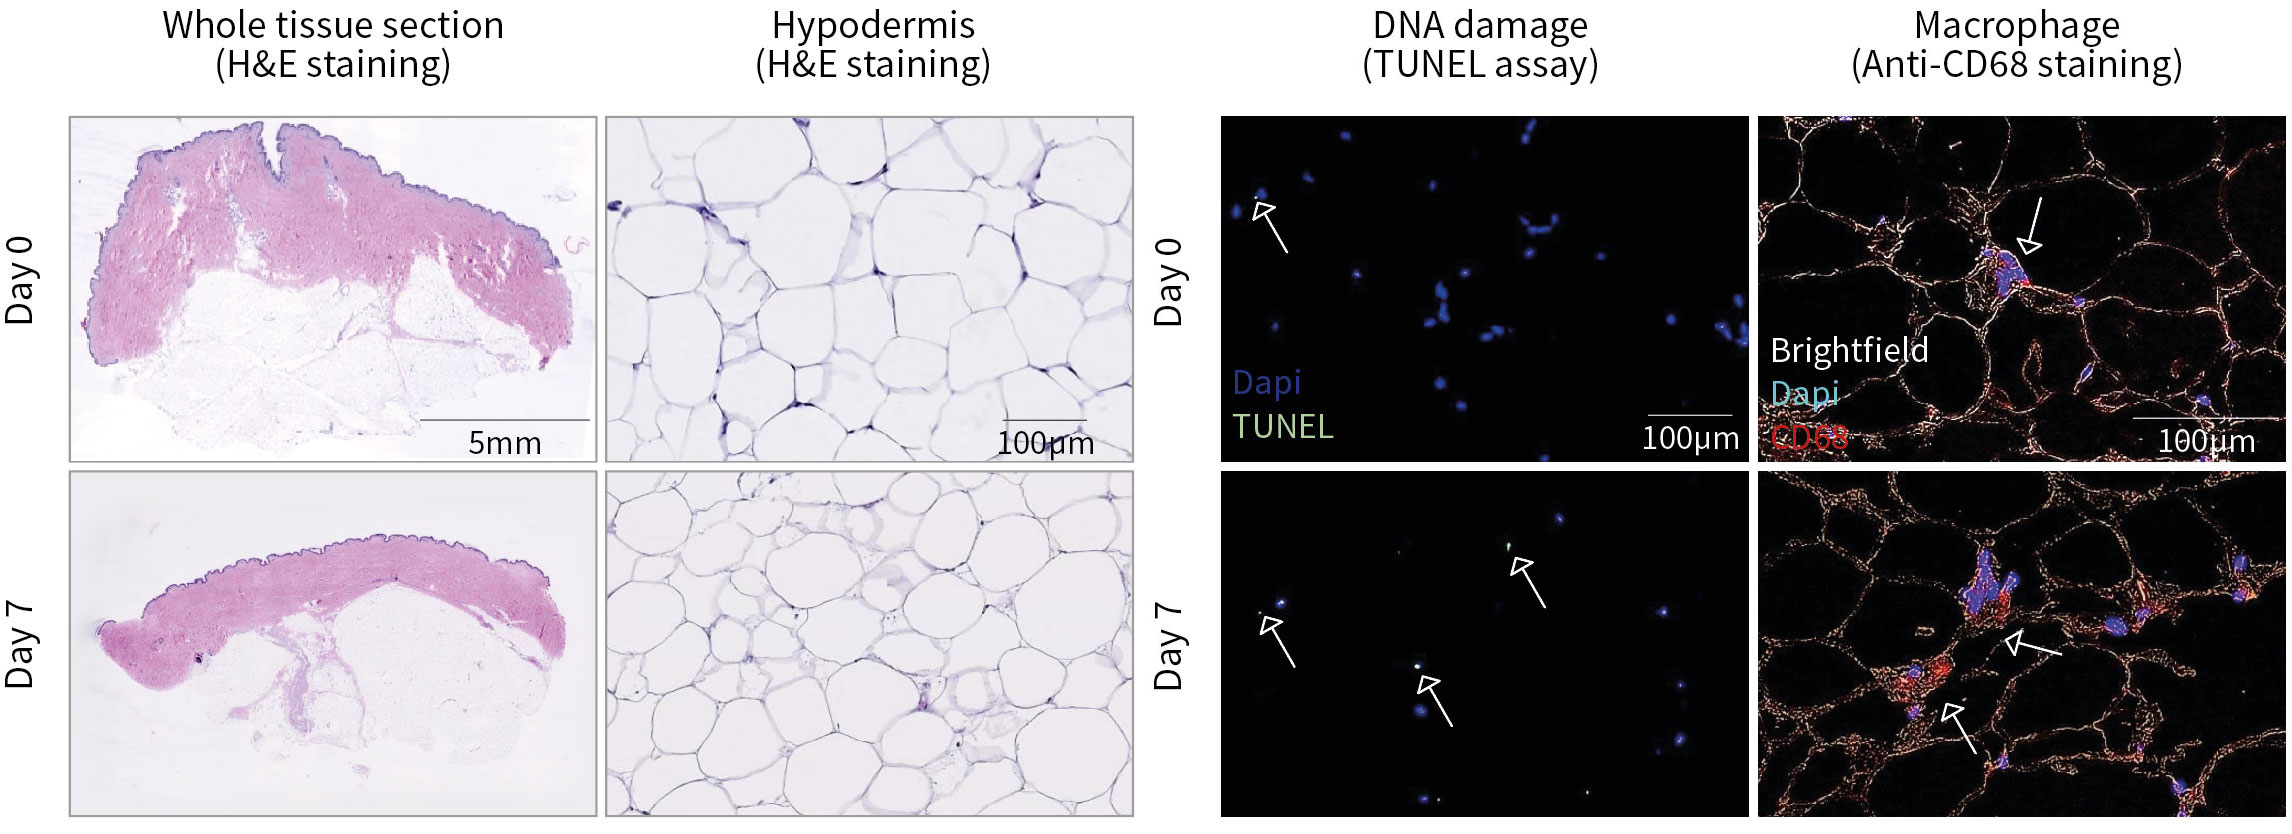 Histological characterization of HypoSkin® model following production & after 7 days of ex vivo culture.